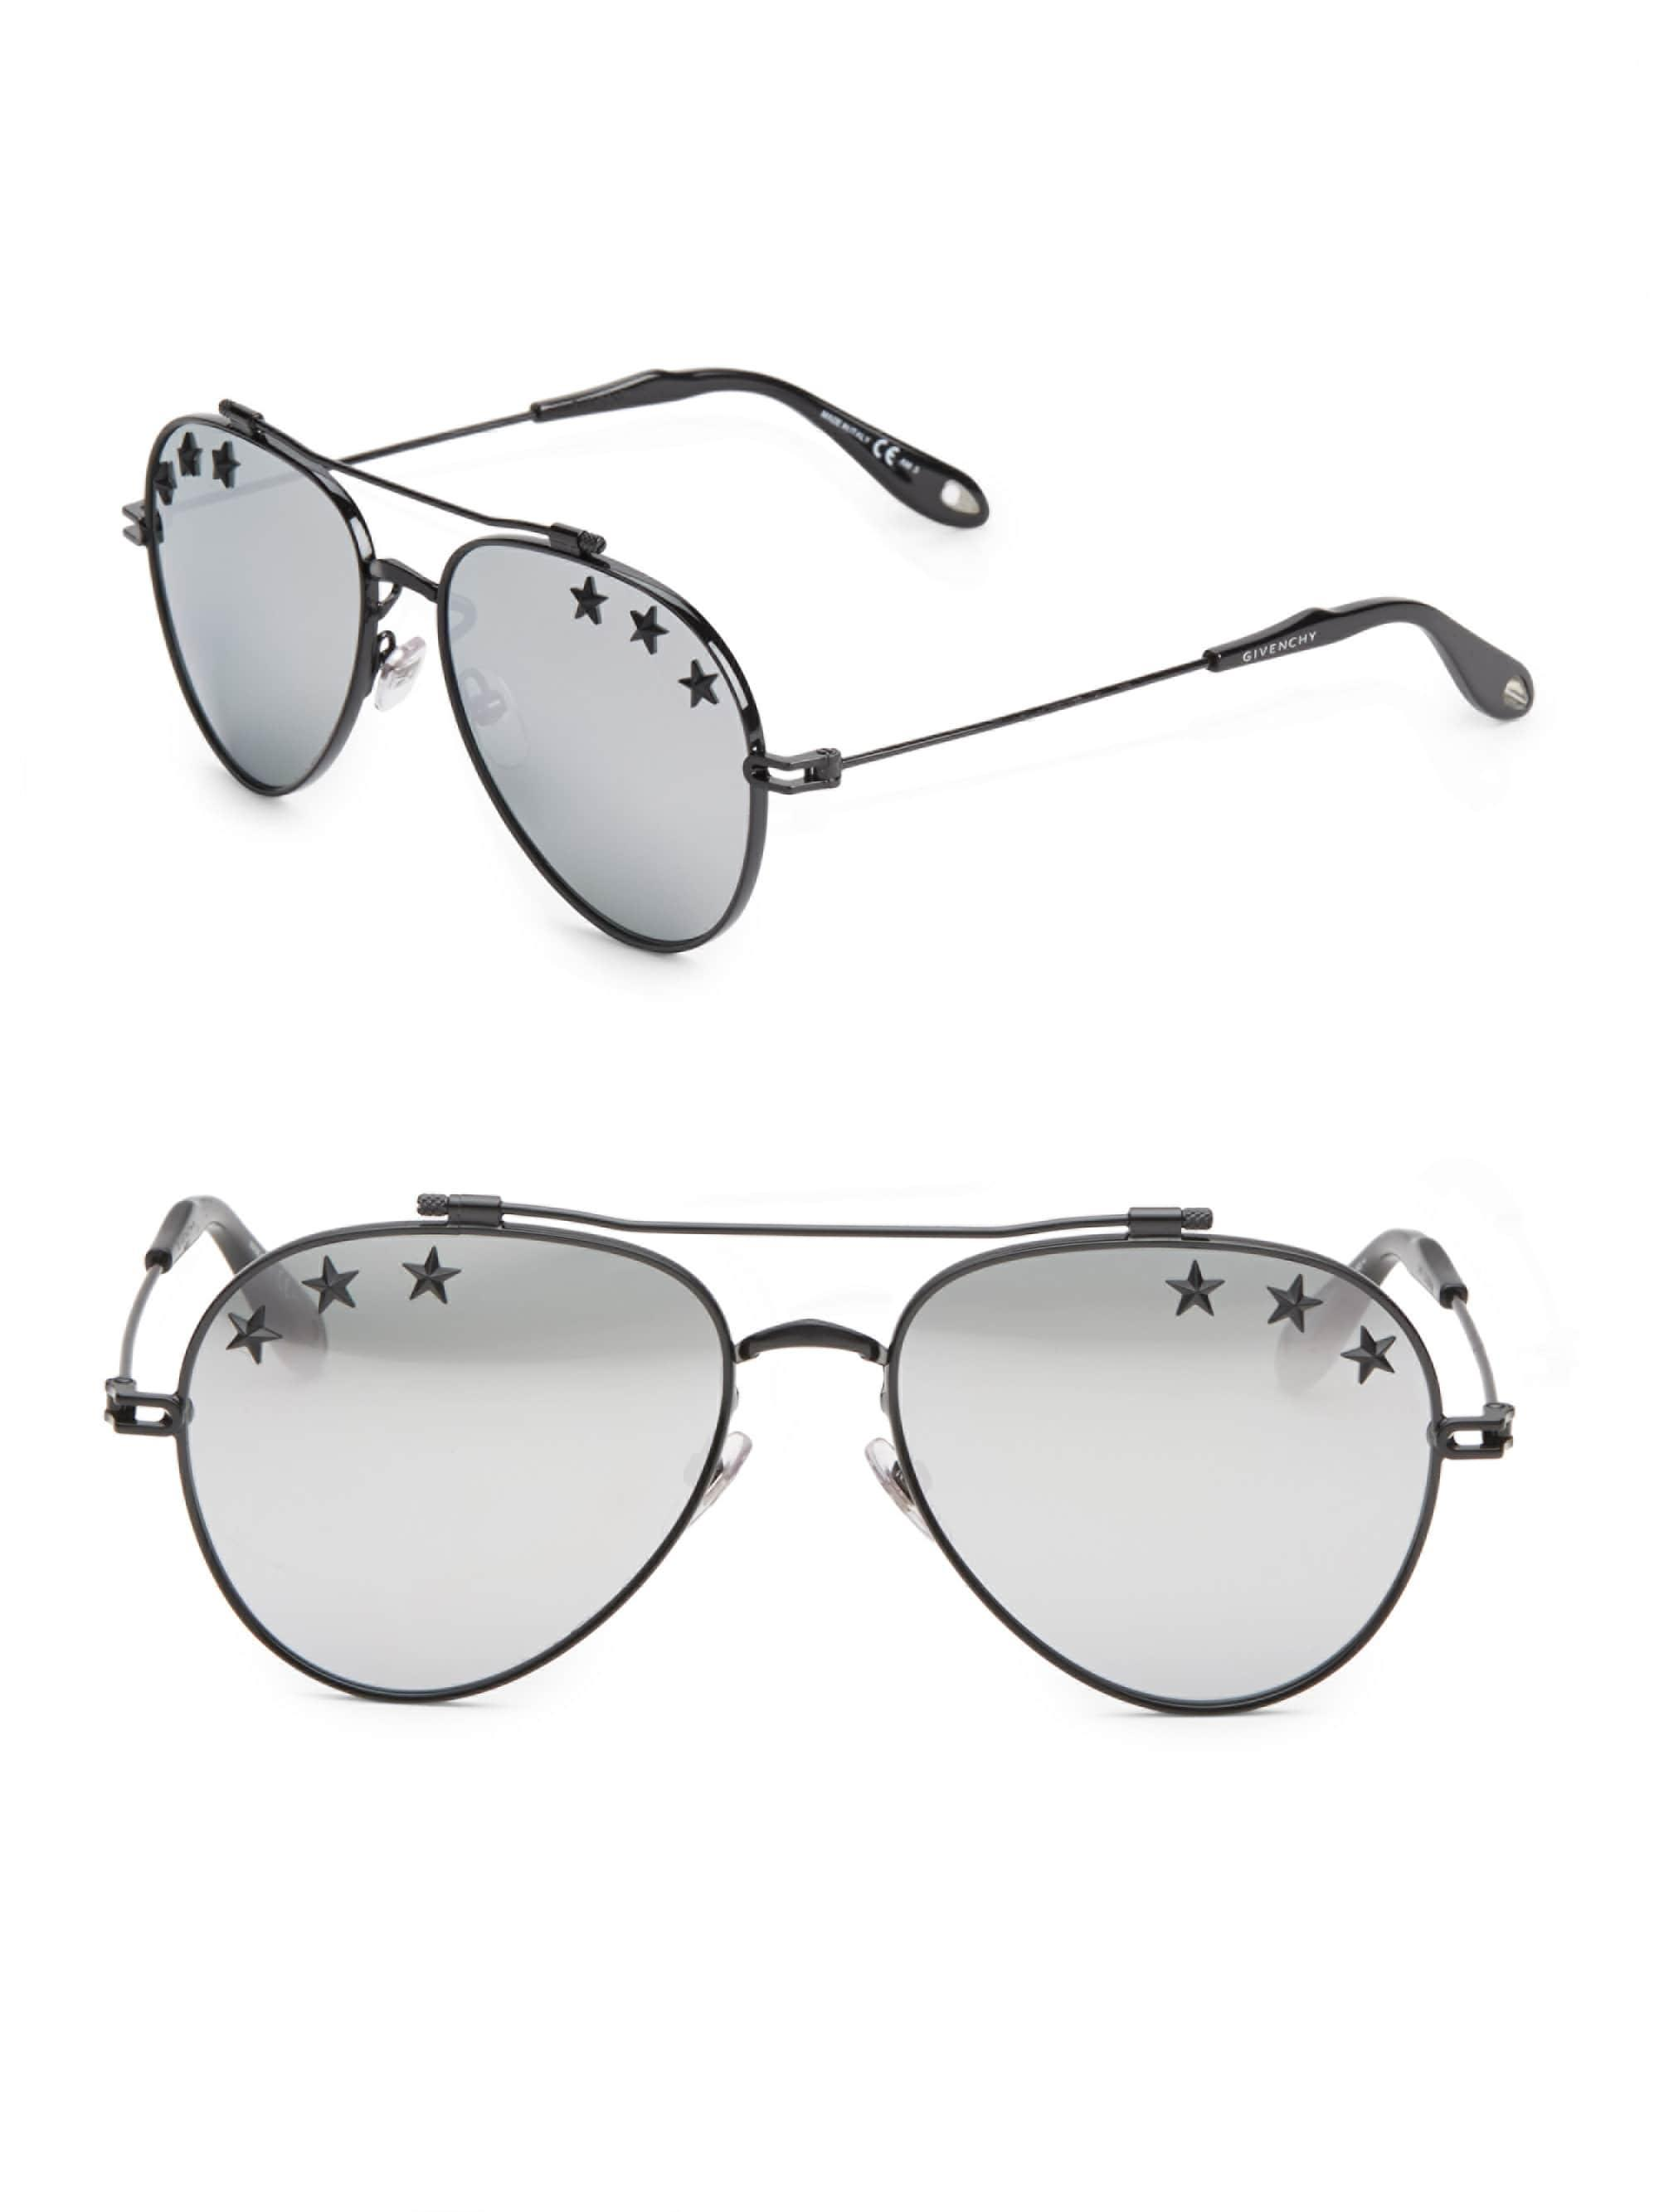 8bccf99051908 Lyst - Givenchy 58mm Star Aviator Sunglasses in Metallic for Men